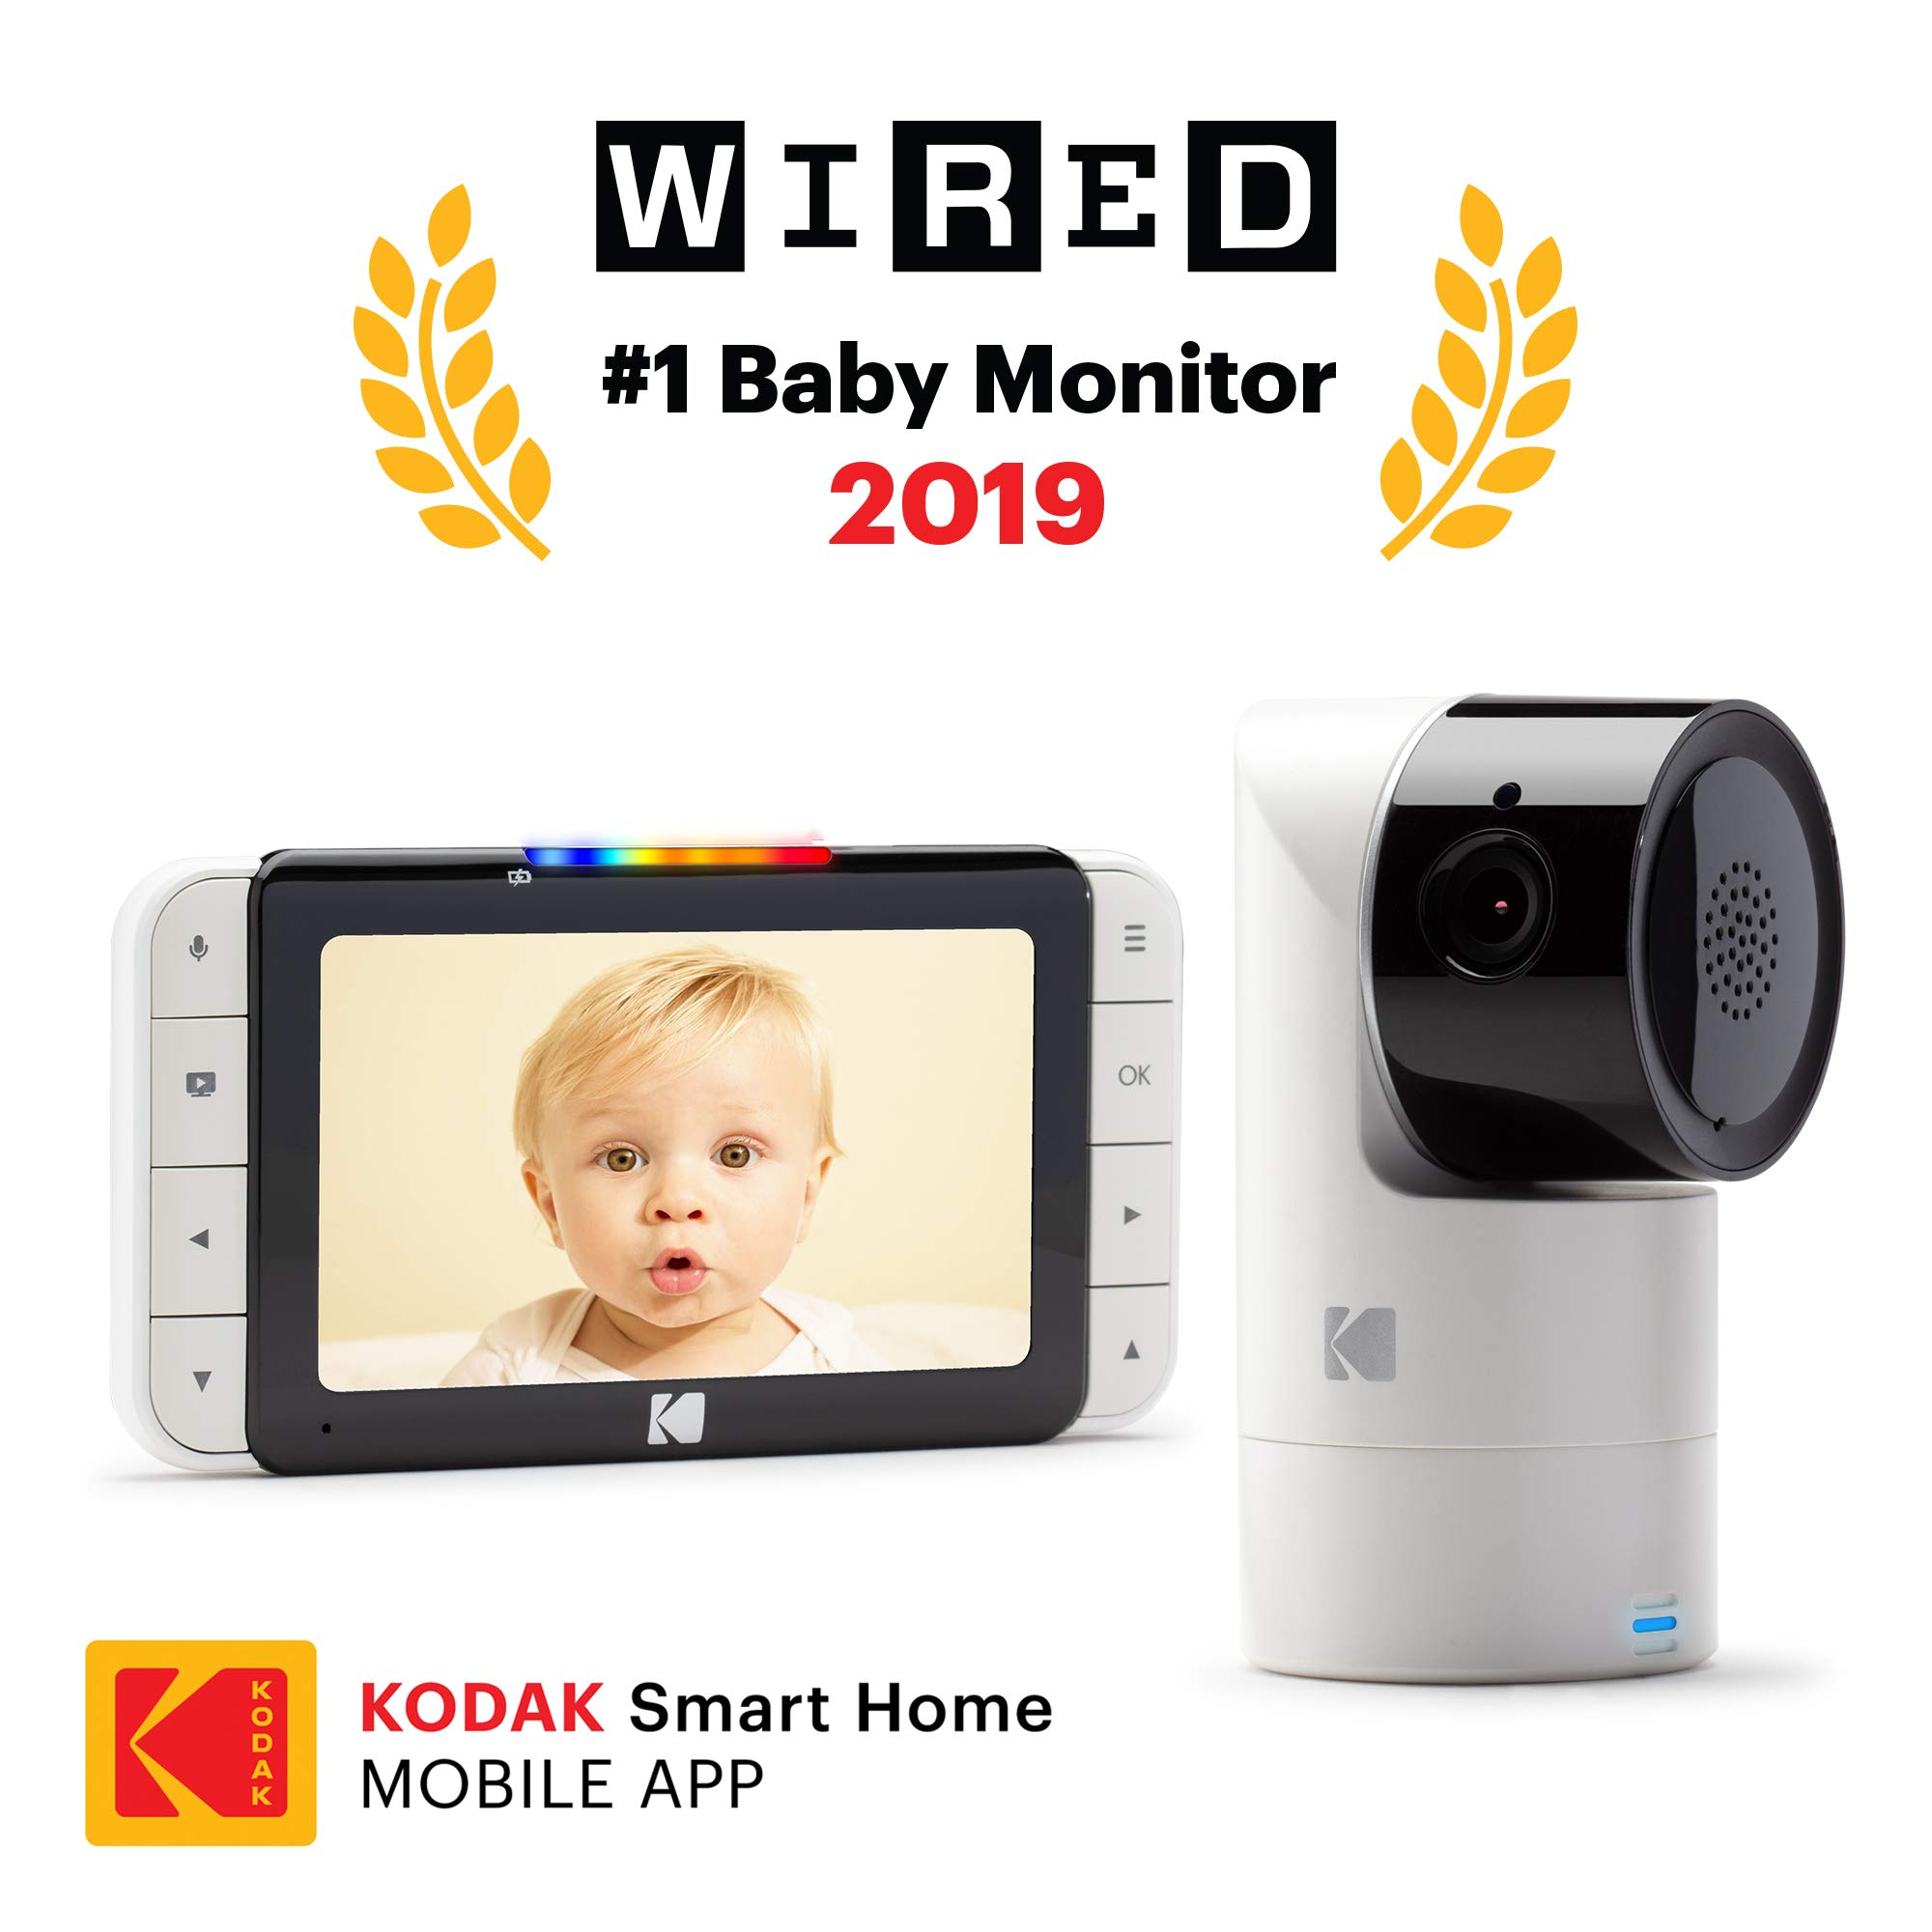 KODAK Cherish C525 Video Baby Monitor with Mobile App - 5'' HD Screen - Hi-res Baby Camera with Remote Tilt, Pan and Zoom, Two-Way Audio, Night-Vision, Long Range - WiFi Indoor Camera by Kodak (Image #1)